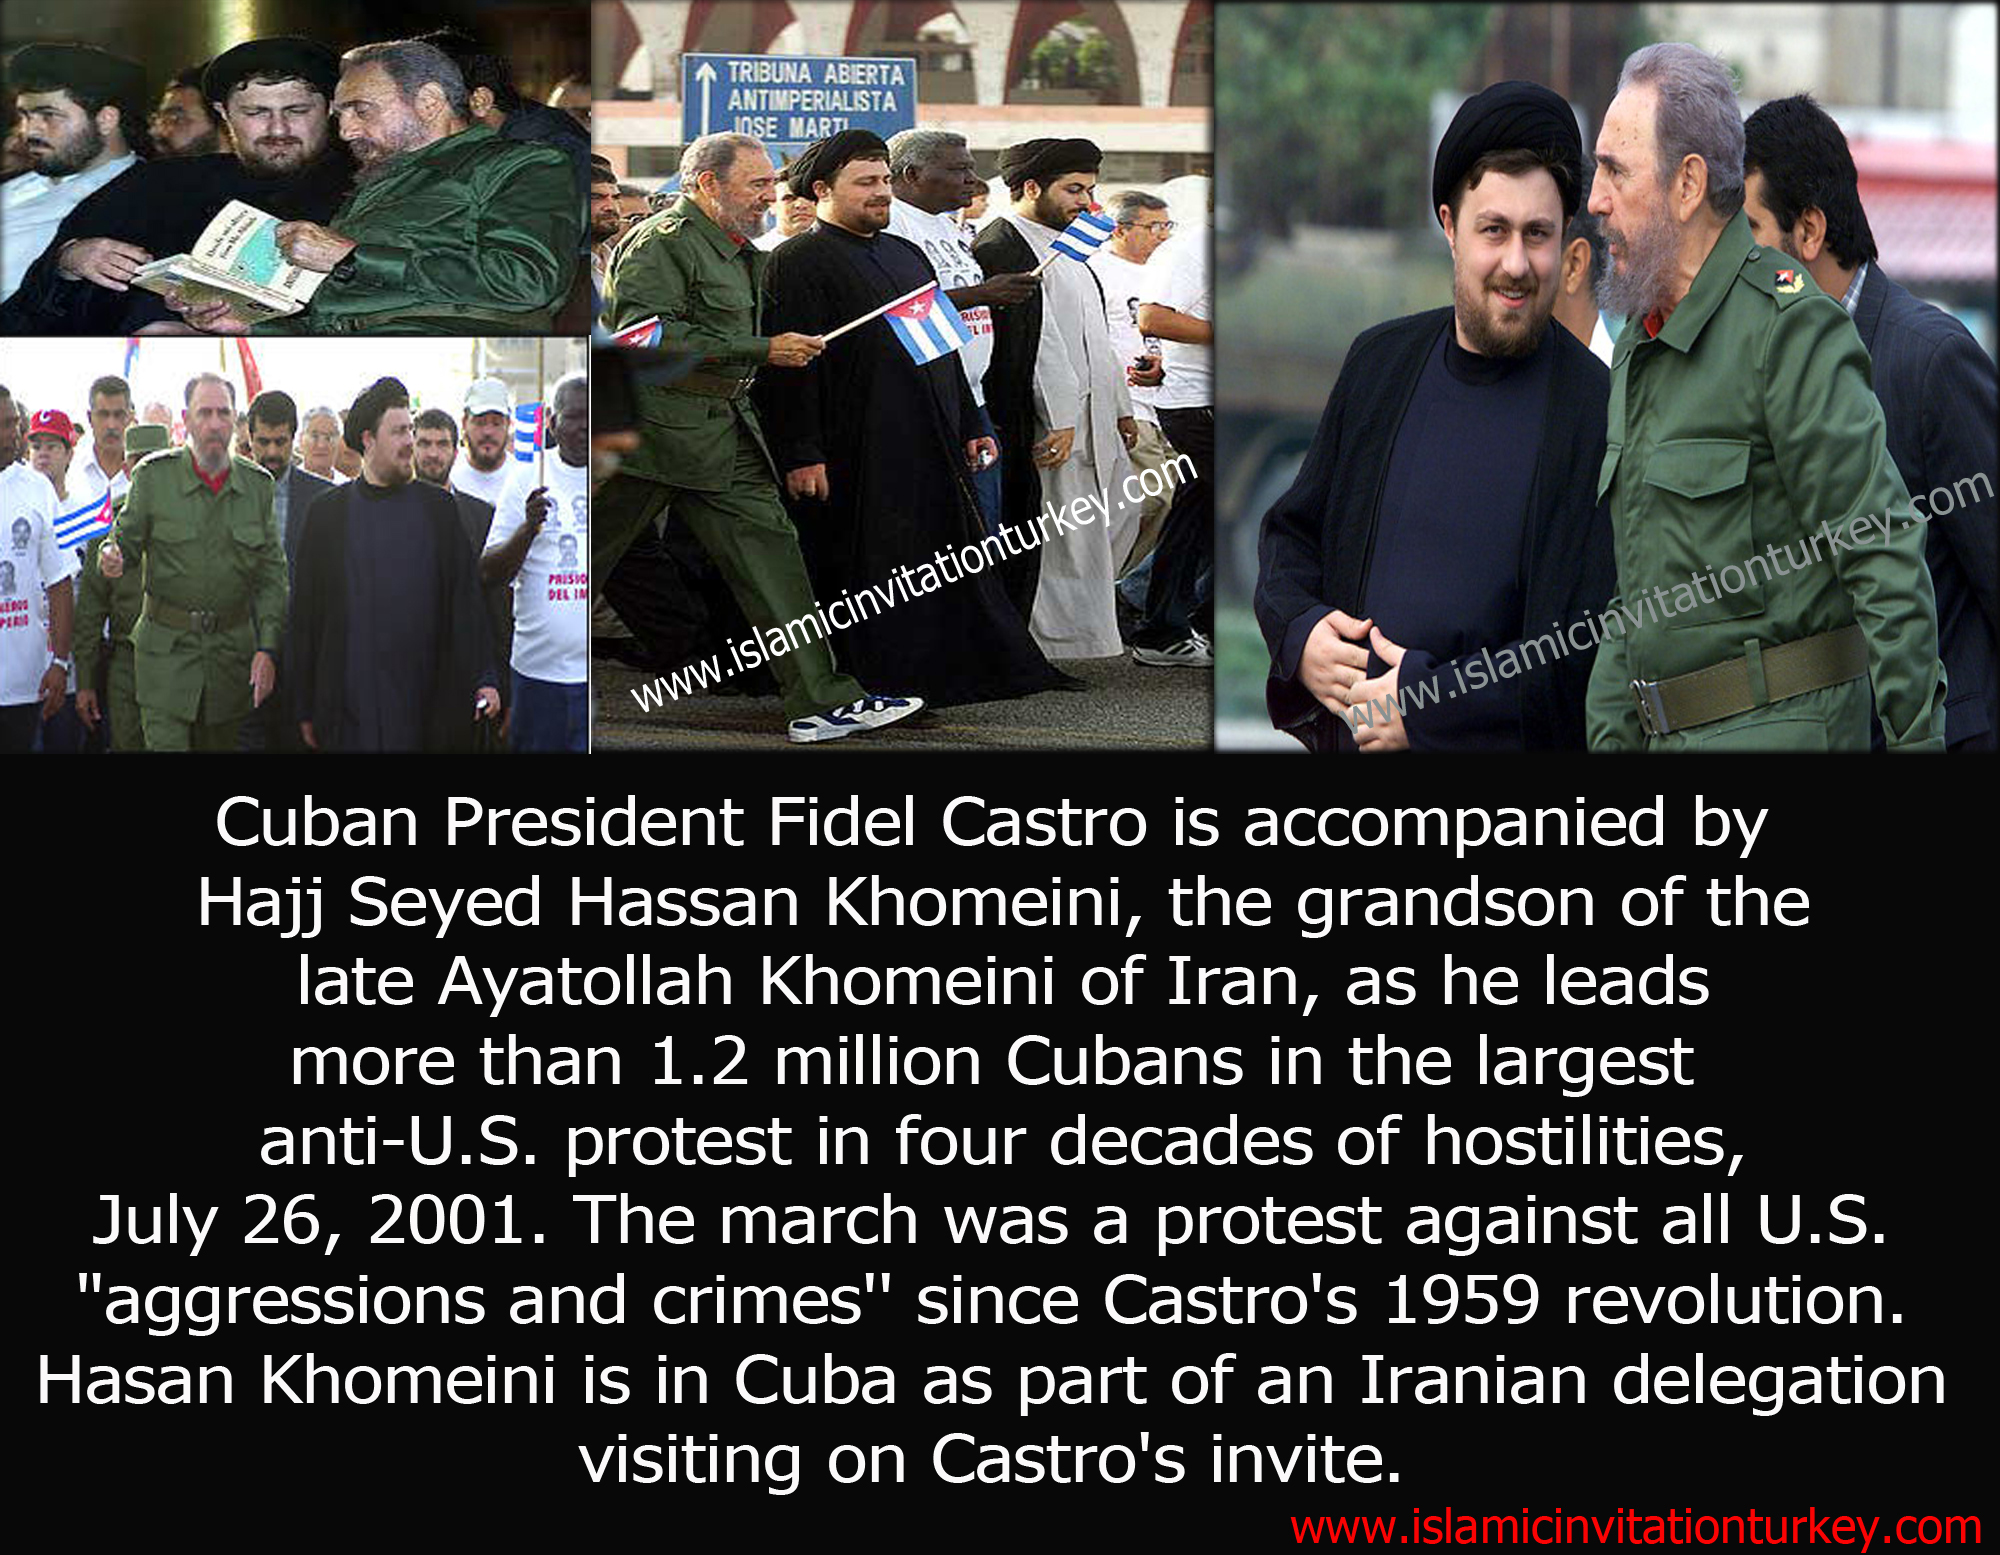 Photo of Cuban President Fidel Castro is accompanied by Hajj Seyed Hassan Khomeini, the grandson of the late Ayatollah Khomeini of Iran